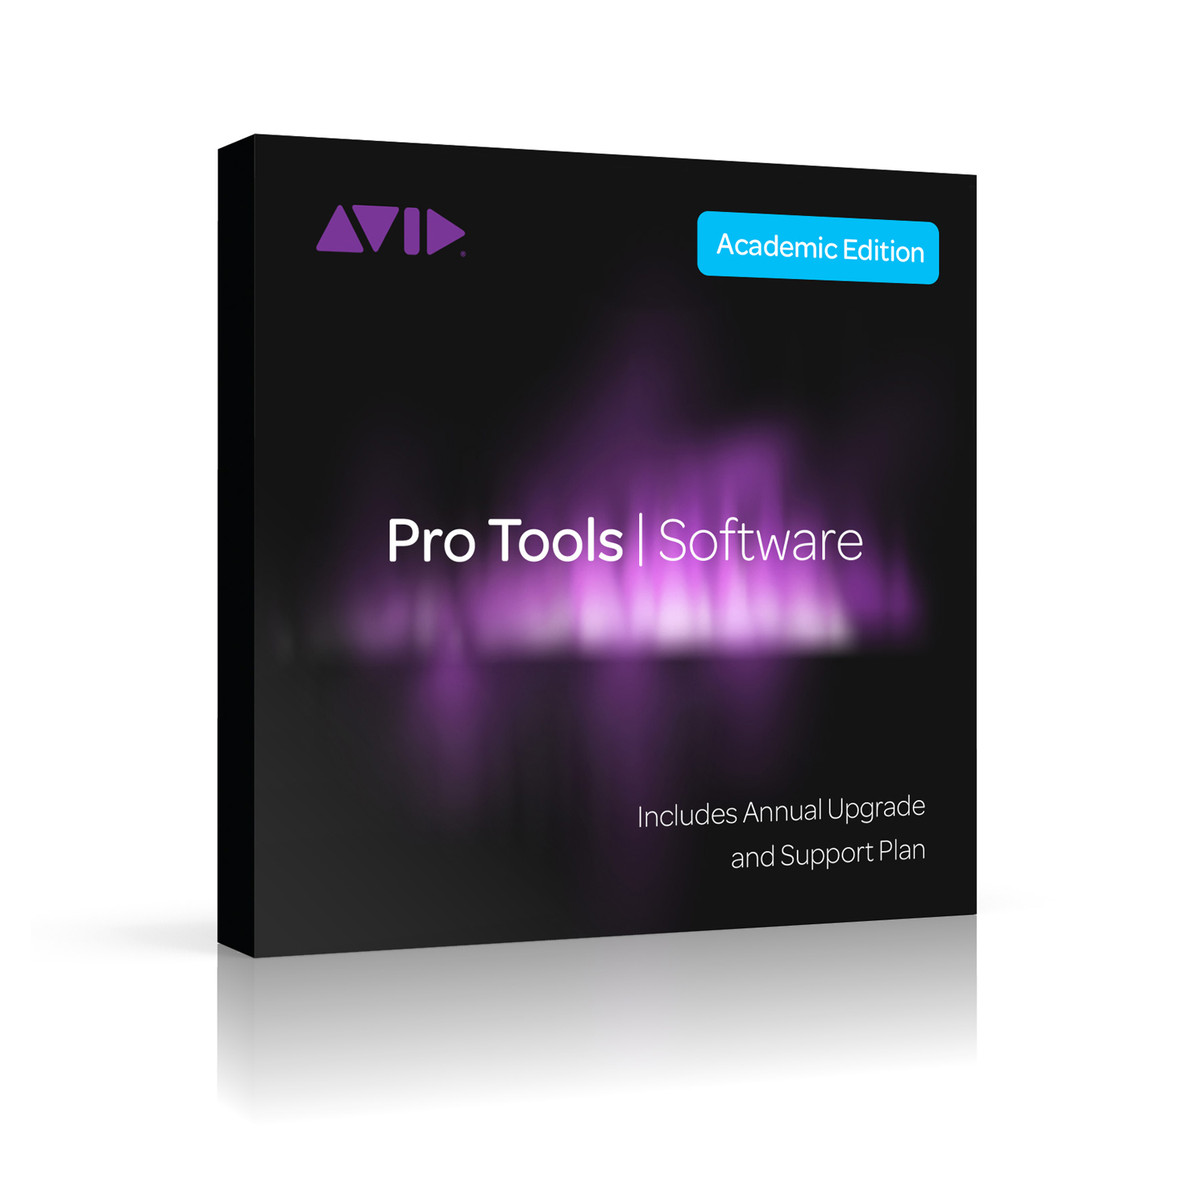 Image of Avid Pro Tools Student/Teacher with Annual Upgrade & Support Plan